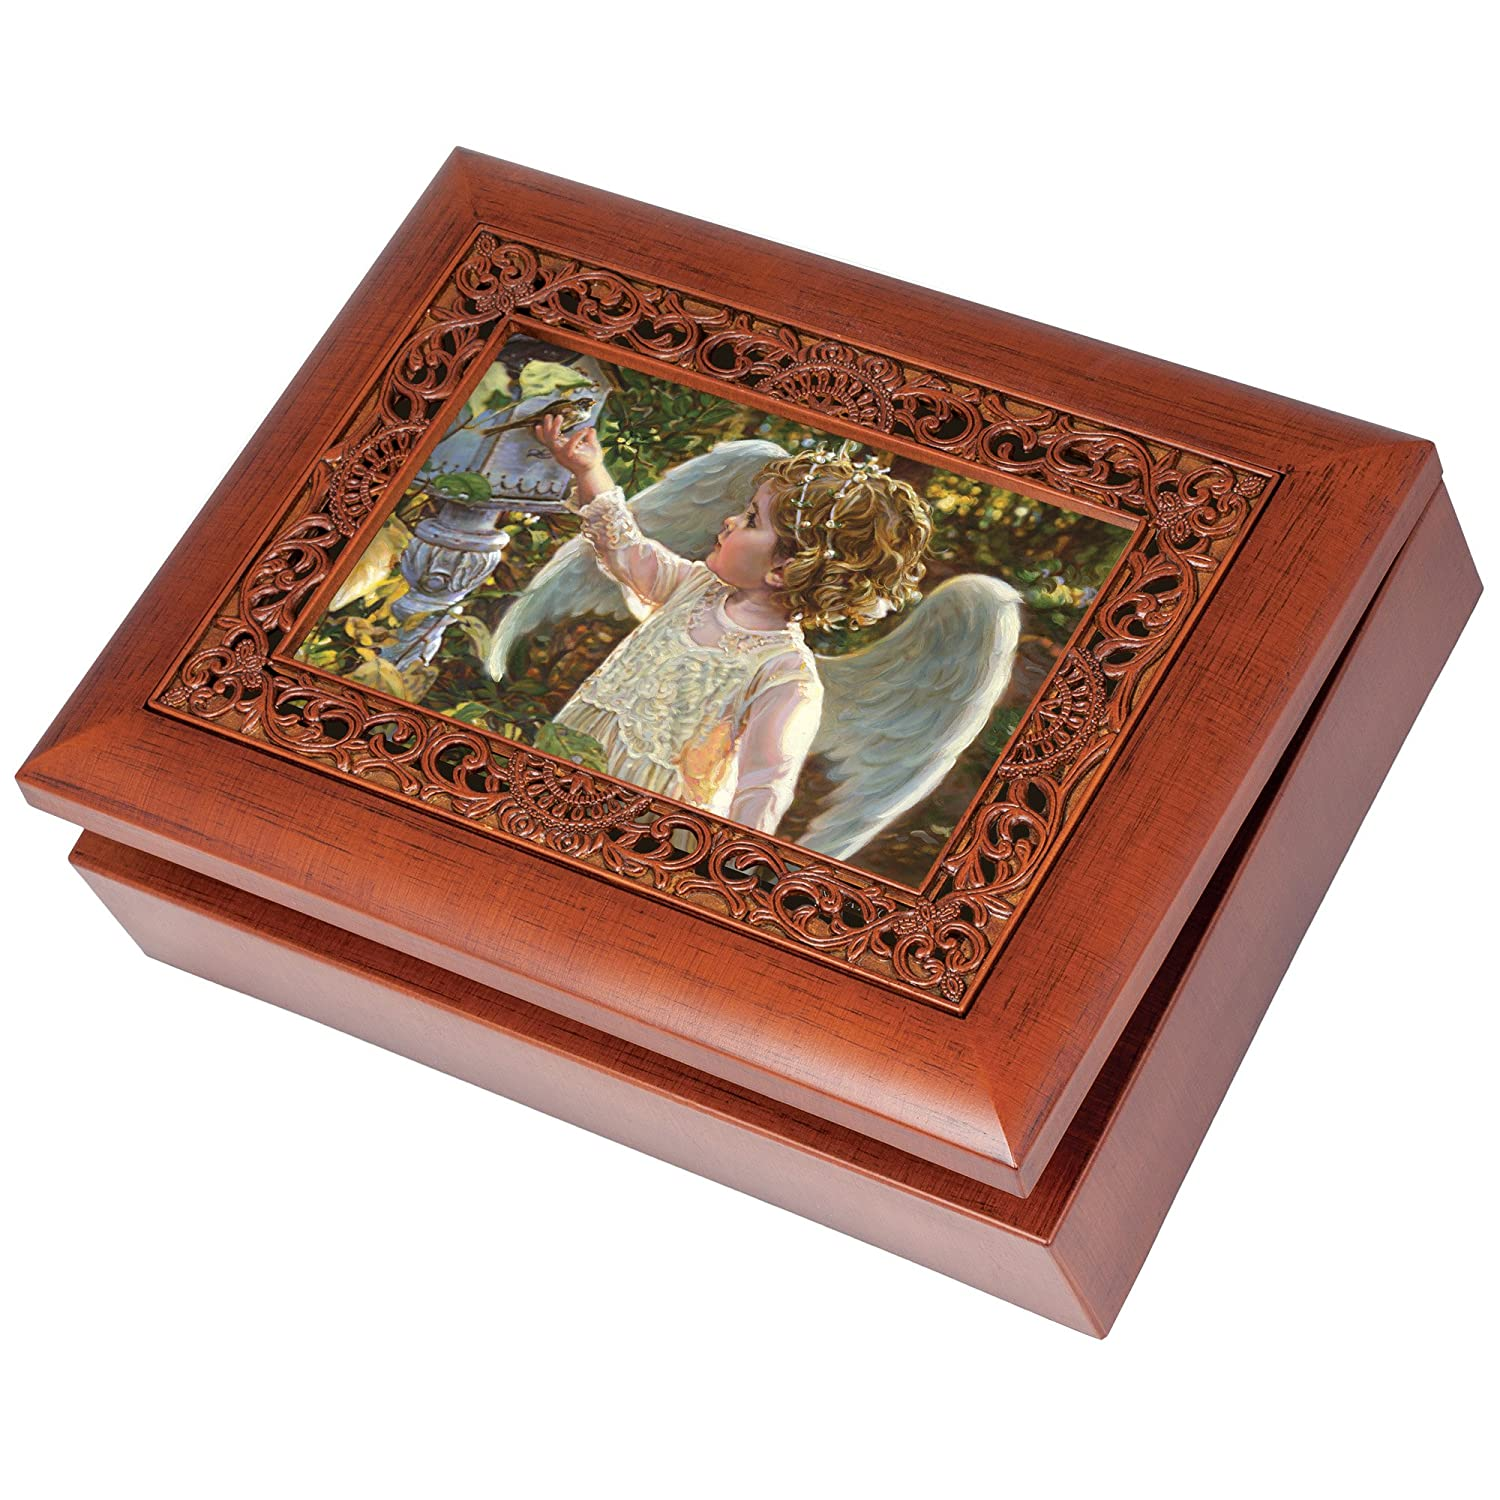 無料配達 Guardian B0117R4FSW Angel in the Garden Wood Wood Finish Ornate Garden Jewellery Music Box Plays Tune Ave Maria B0117R4FSW, HIP HOP DOPE:f95330d1 --- arcego.dominiotemporario.com